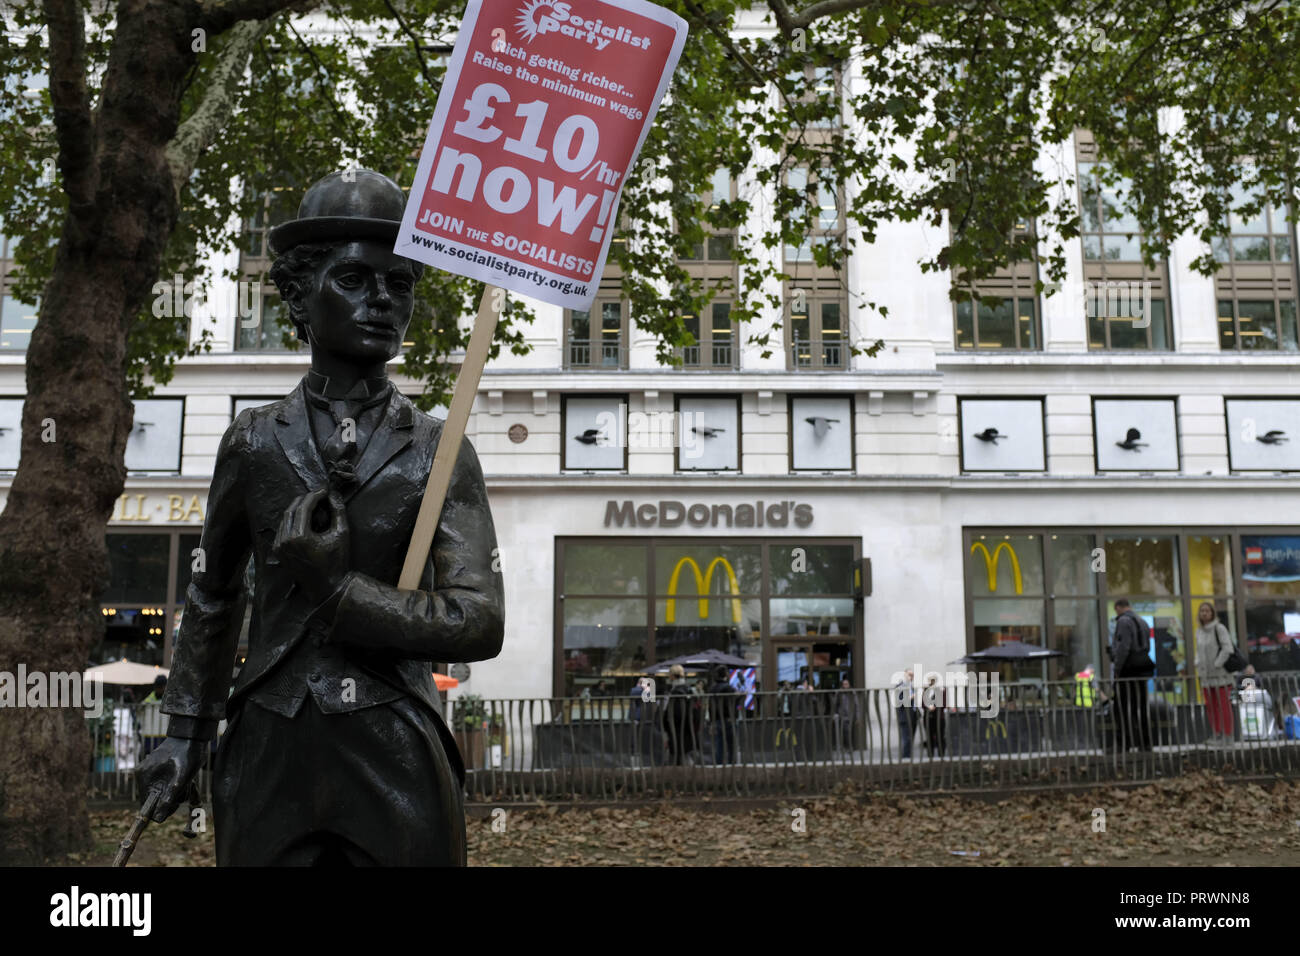 London, Greater London, UK. 5th Oct, 2018. A Charles Chaplin sculpture seen holding a poster saying £10/hr Now! during the protest.Wetherspoons, TGI Fridays, and McDonald's workers rally together in London to demand better working conditions and a fair pay in the hospitality industry. Credit: Andres Pantoja/SOPA Images/ZUMA Wire/Alamy Live News - Stock Image